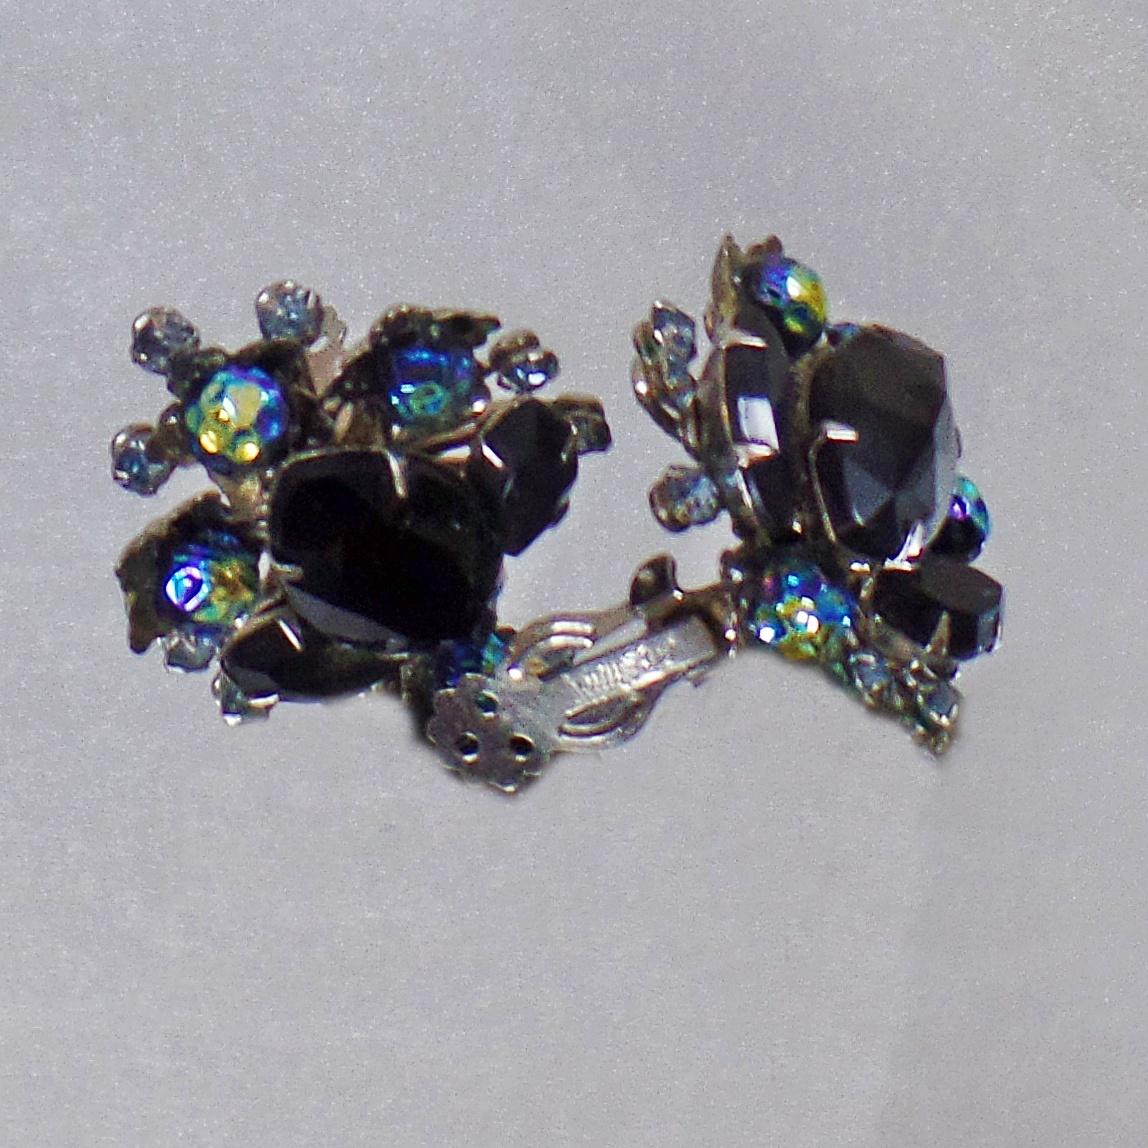 Roll Over Large Image To Magnify, Click Large Image To Zoom Change  Background Expand Description These Vintage Black Rhinestone Earrings